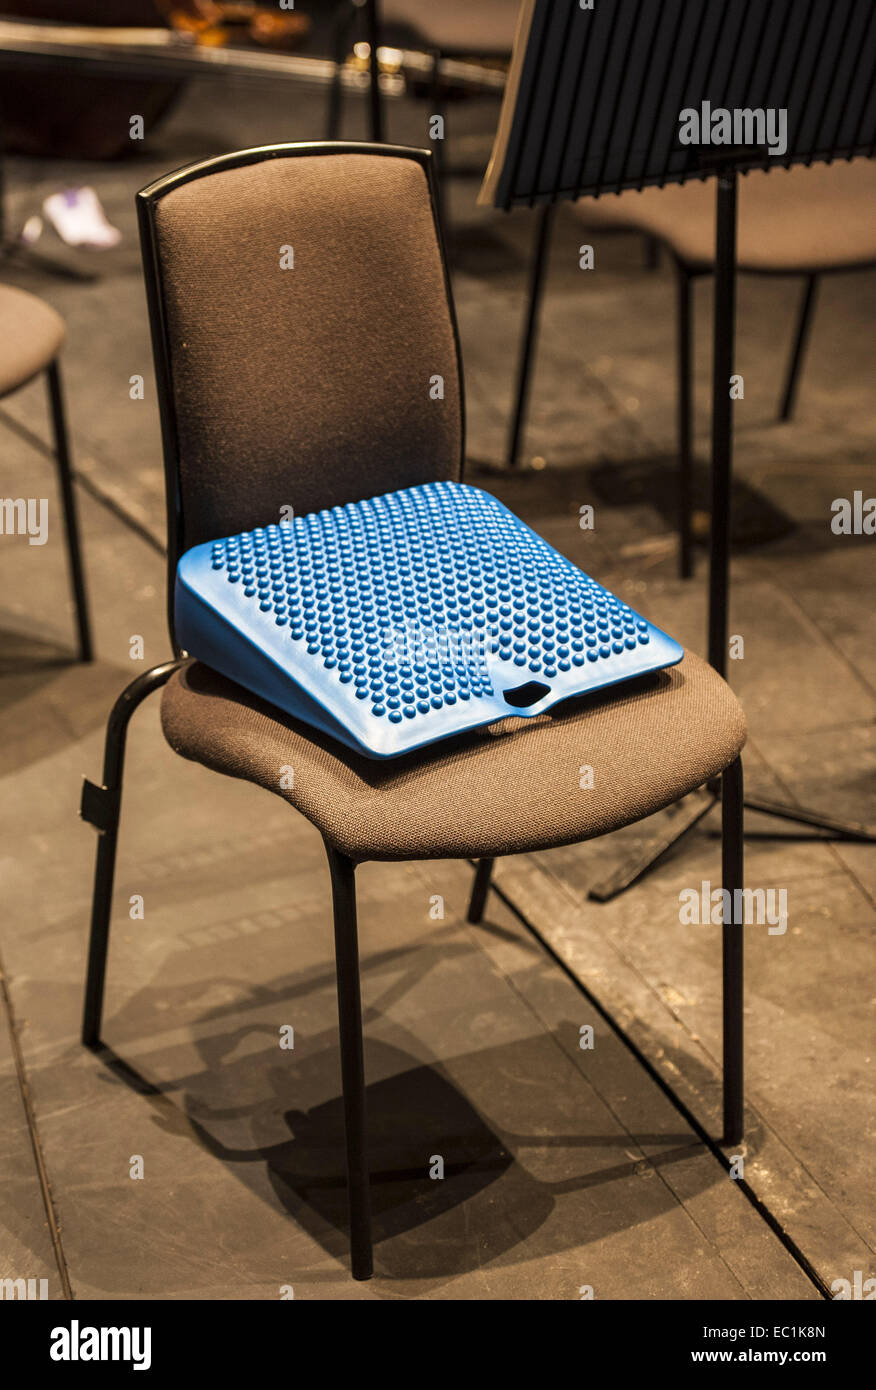 CellistÕs seat support cushion, sloping and designed in rubber to support the back from the unsuitable chairs - Stock Image